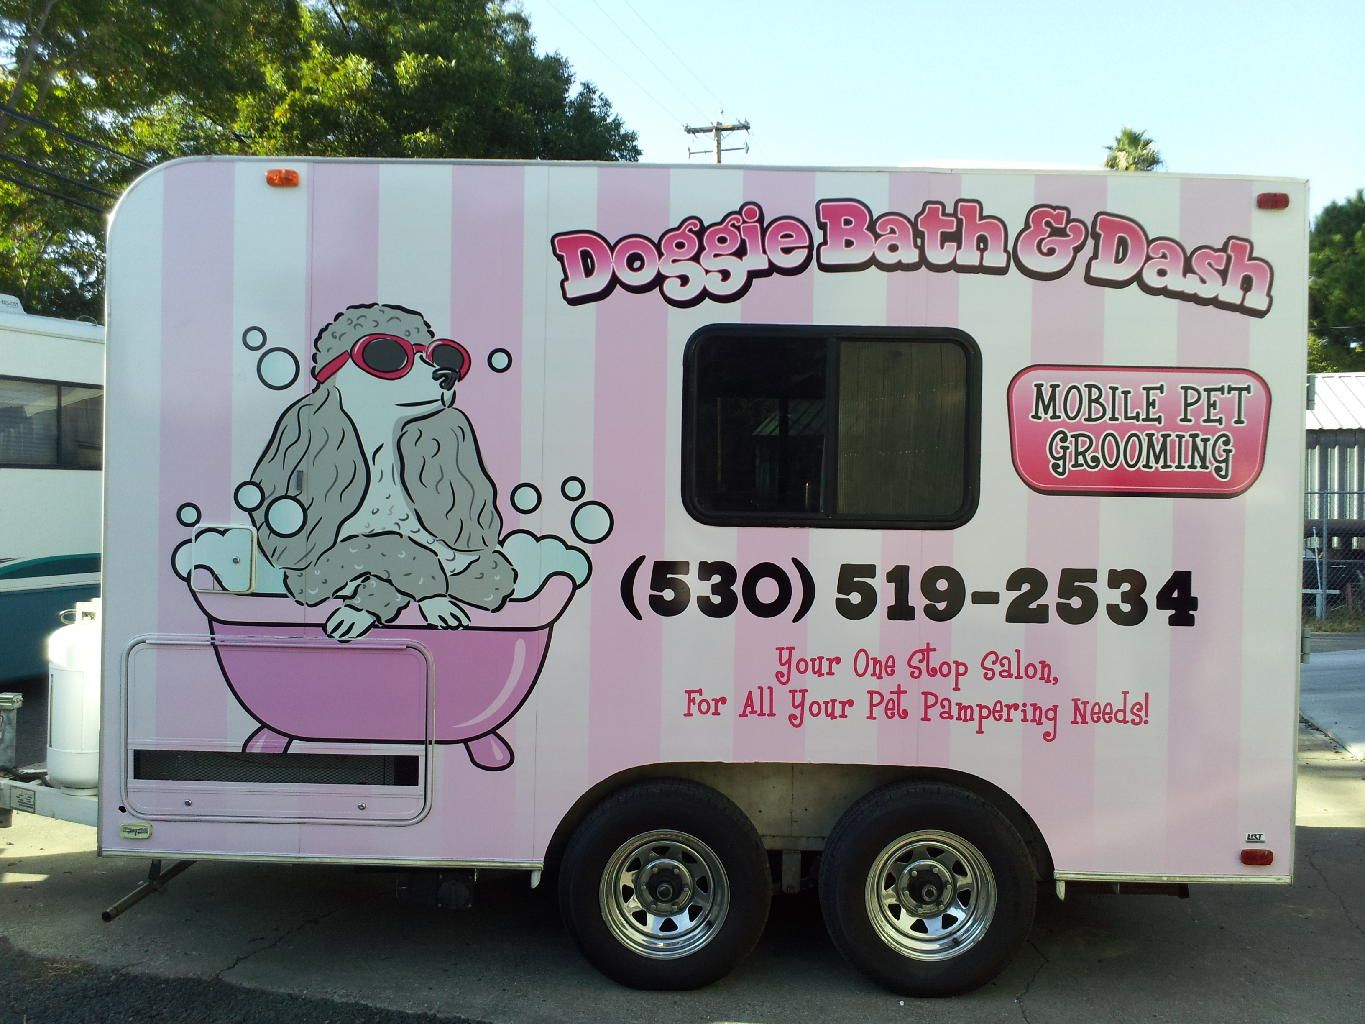 50 truck businesses that don t sell food business opportunities tickles and bubbles grooming service pinterest business dog and pet grooming